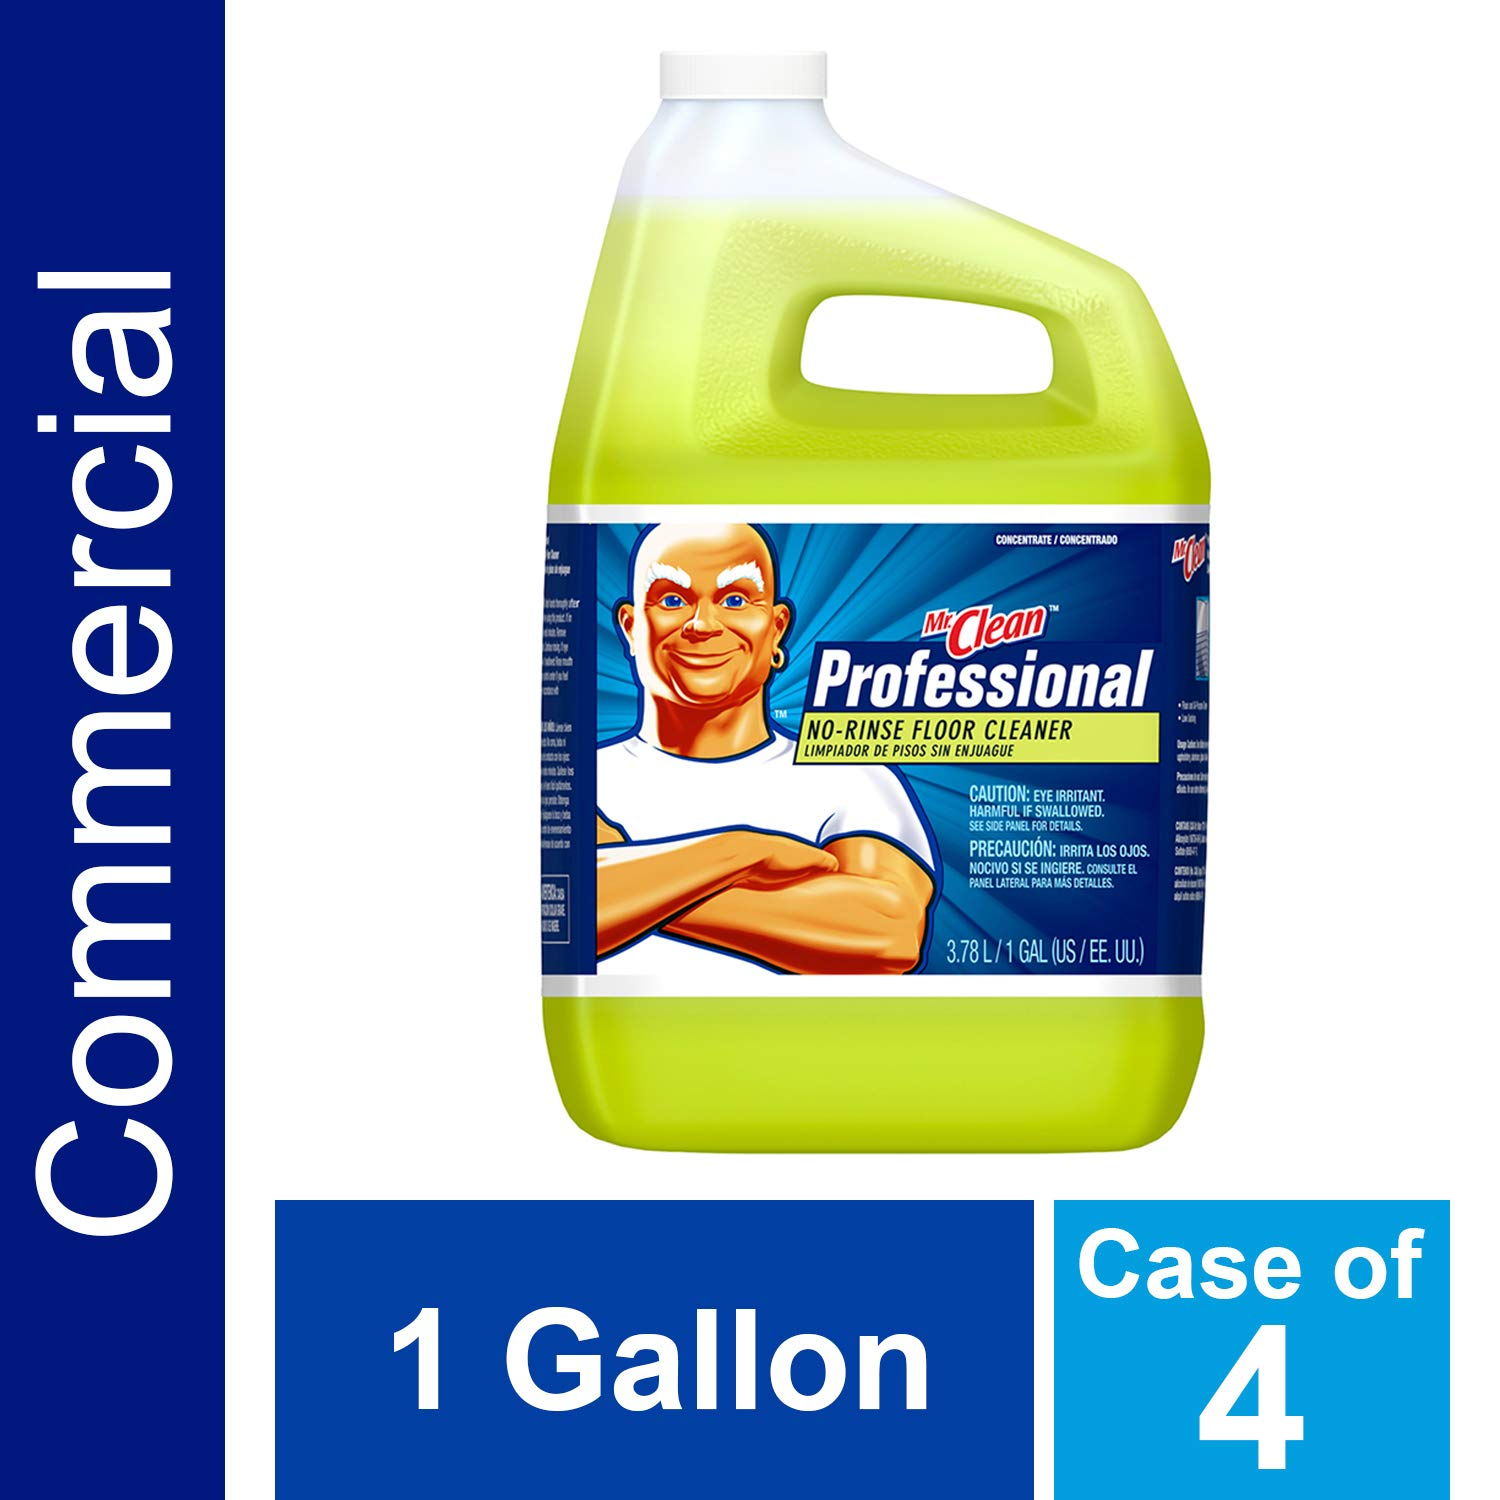 Image of Floor Cleaner from Mr. Clean Professional, Bulk No-Rinse Ready to Use Cleaner Refill for Commercial Use, 1 Gal. (Case of 4)